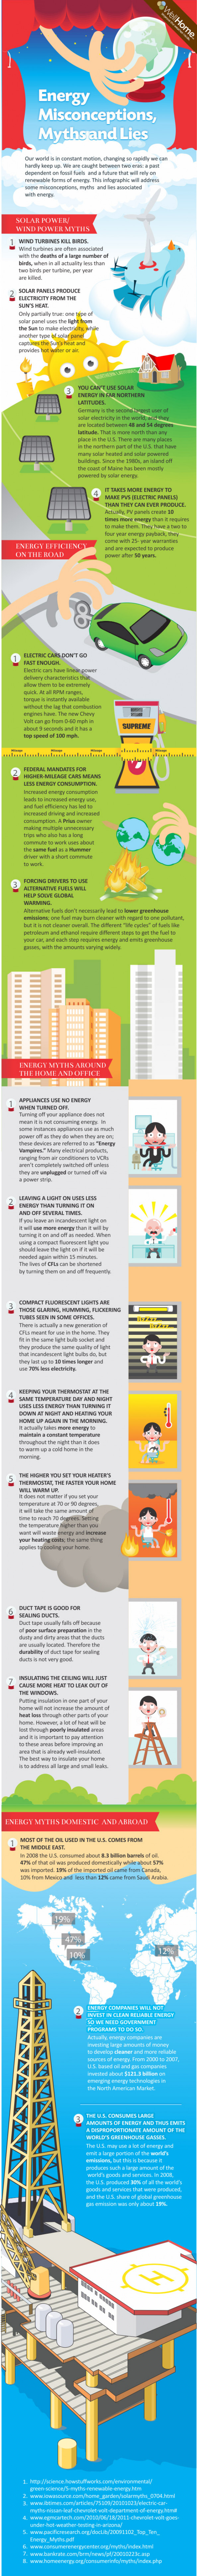 Energy Myths, Misconceptions, and Lies Infographic